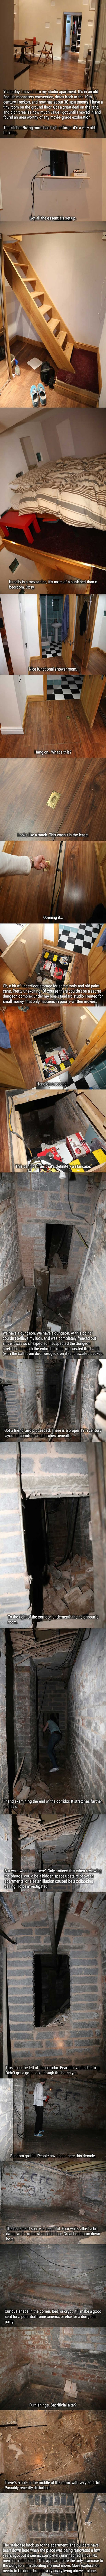 So I Found A Dungeon In My Apartment – 23 Pics